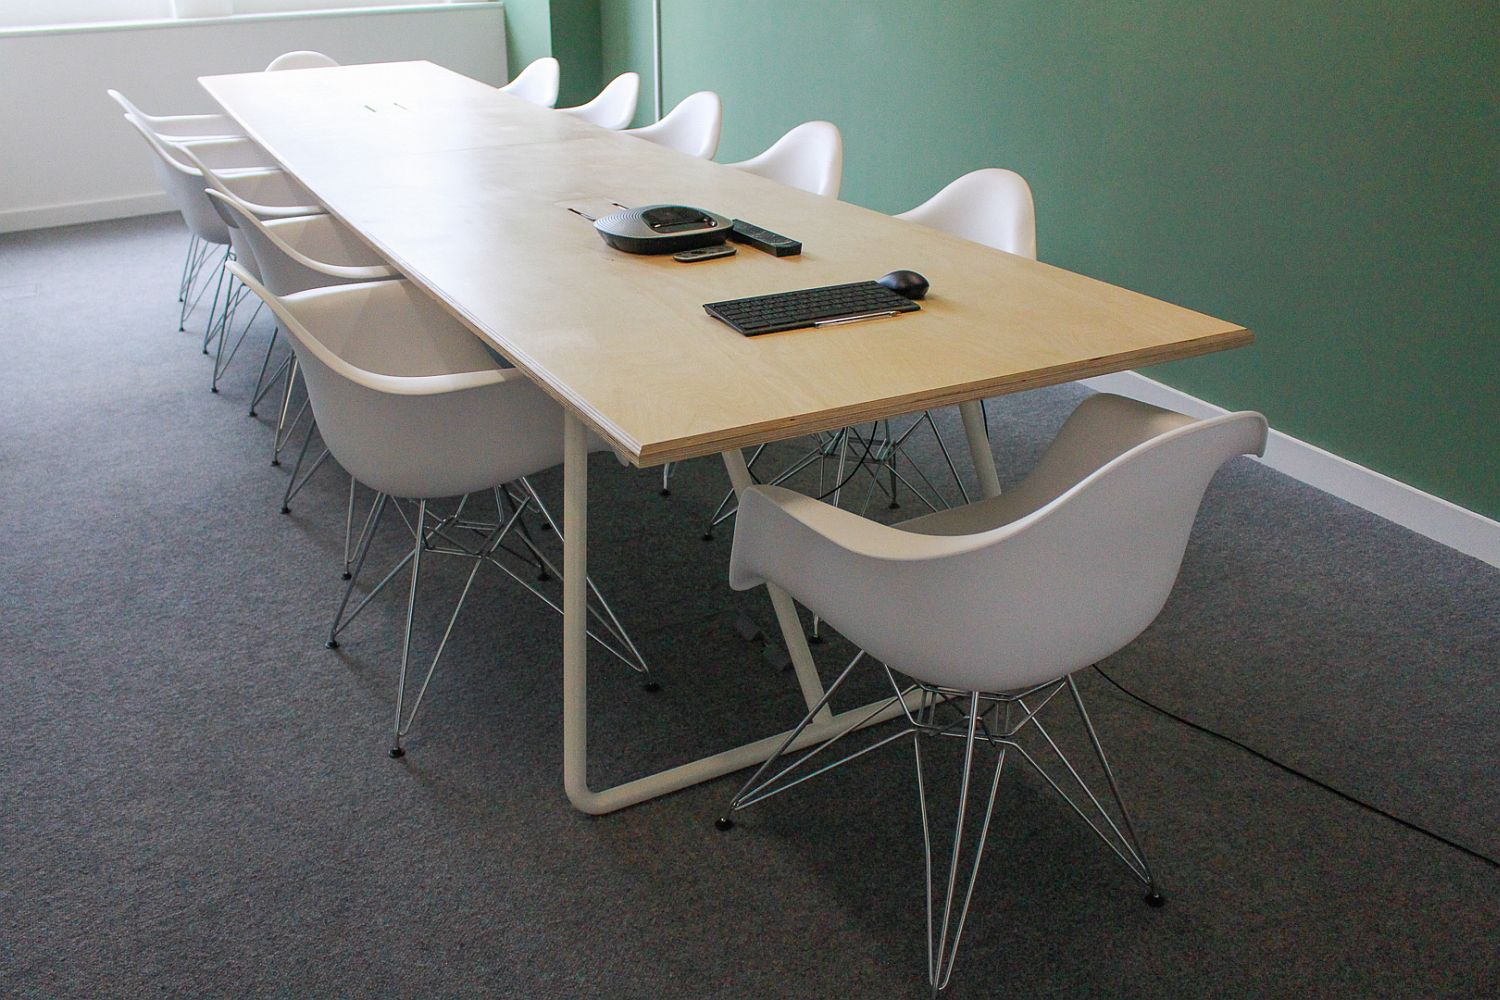 White chairs and wooden table for the office conference room